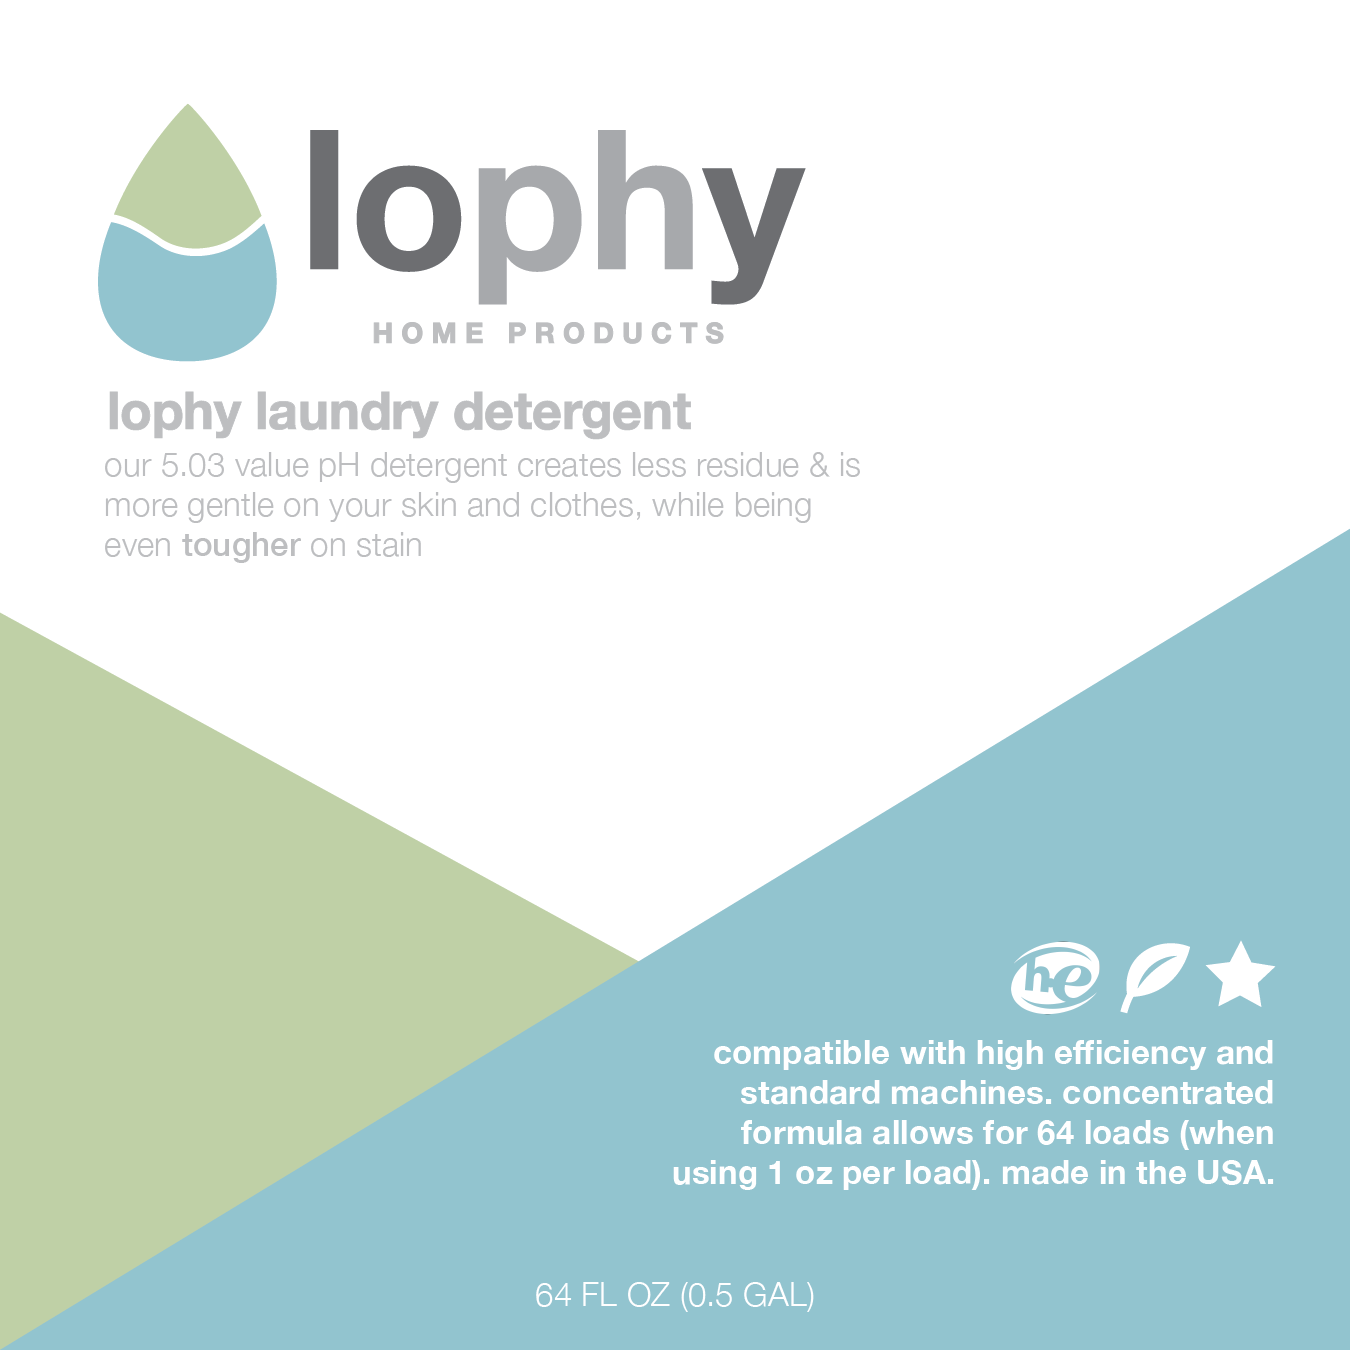 Lophy | 4.5 x 4.5 in | Label Design (Front).png